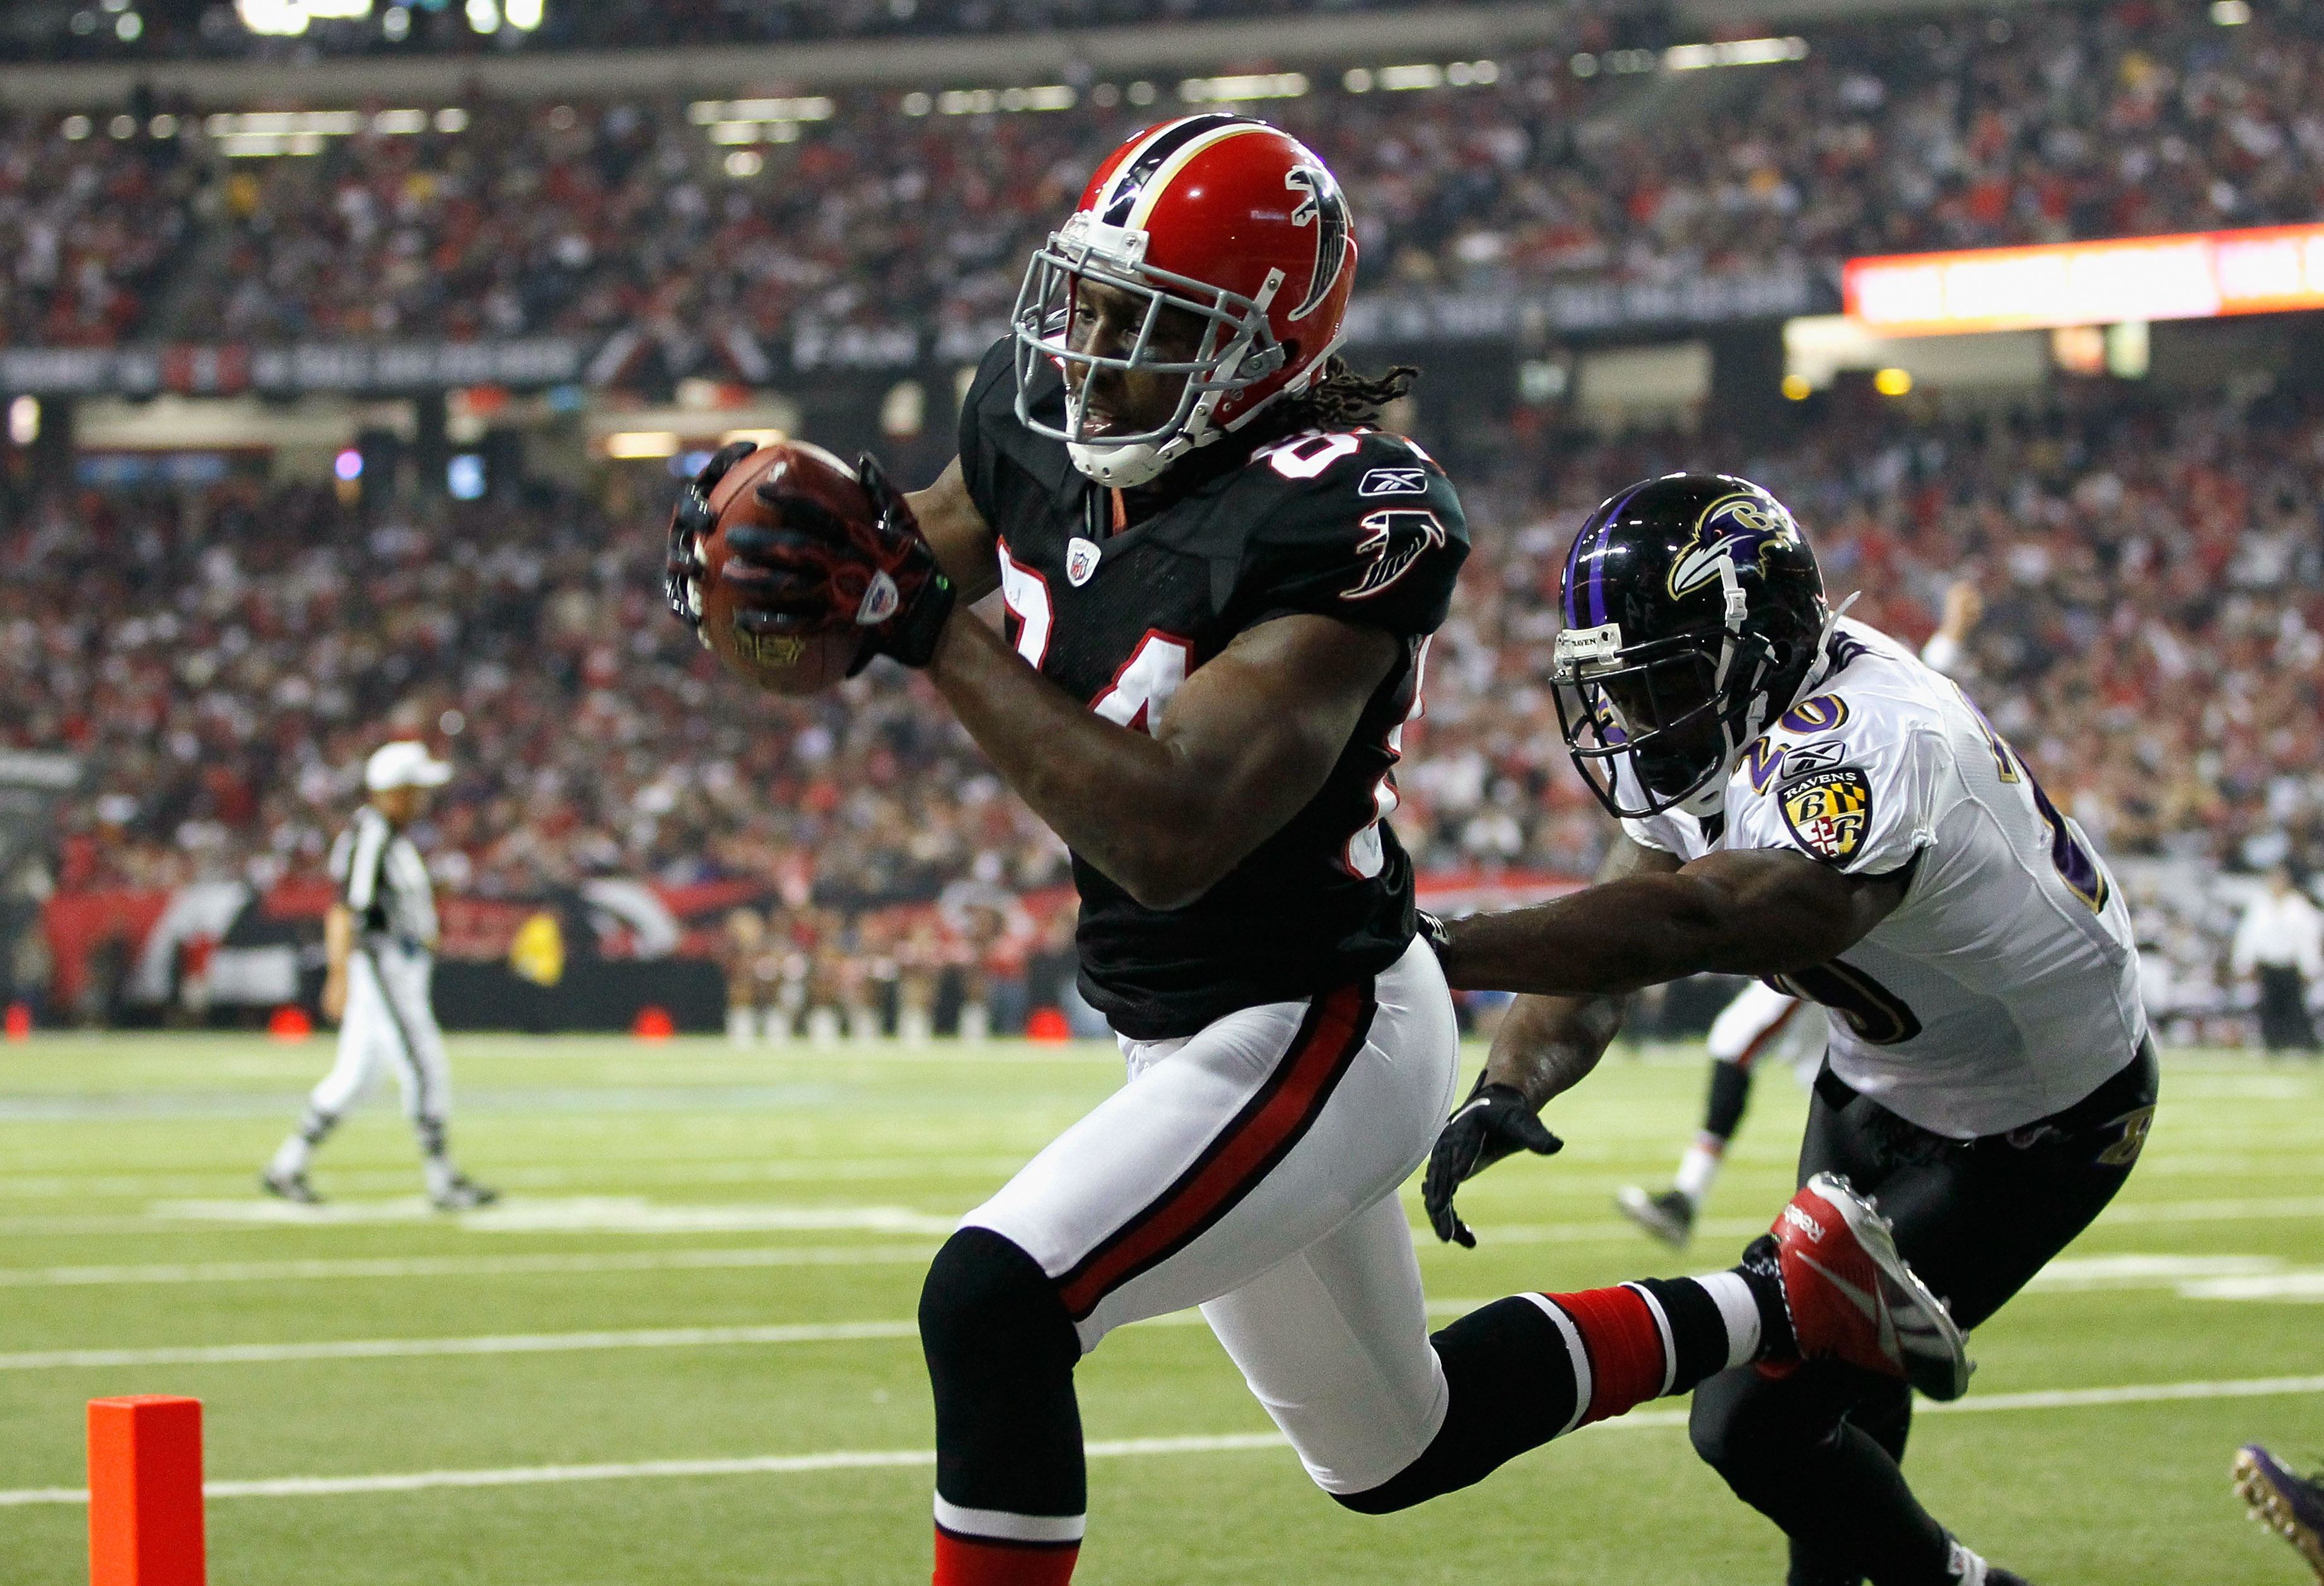 ATLANTA - NOVEMBER 11:  Roddy White #84 of the Atlanta Falcons pulls in this touchdown reception against Ed Reed #20 of the Baltimore Ravens at Georgia Dome on November 11, 2010 in Atlanta, Georgia.  (Photo by Kevin C. Cox/Getty Images)